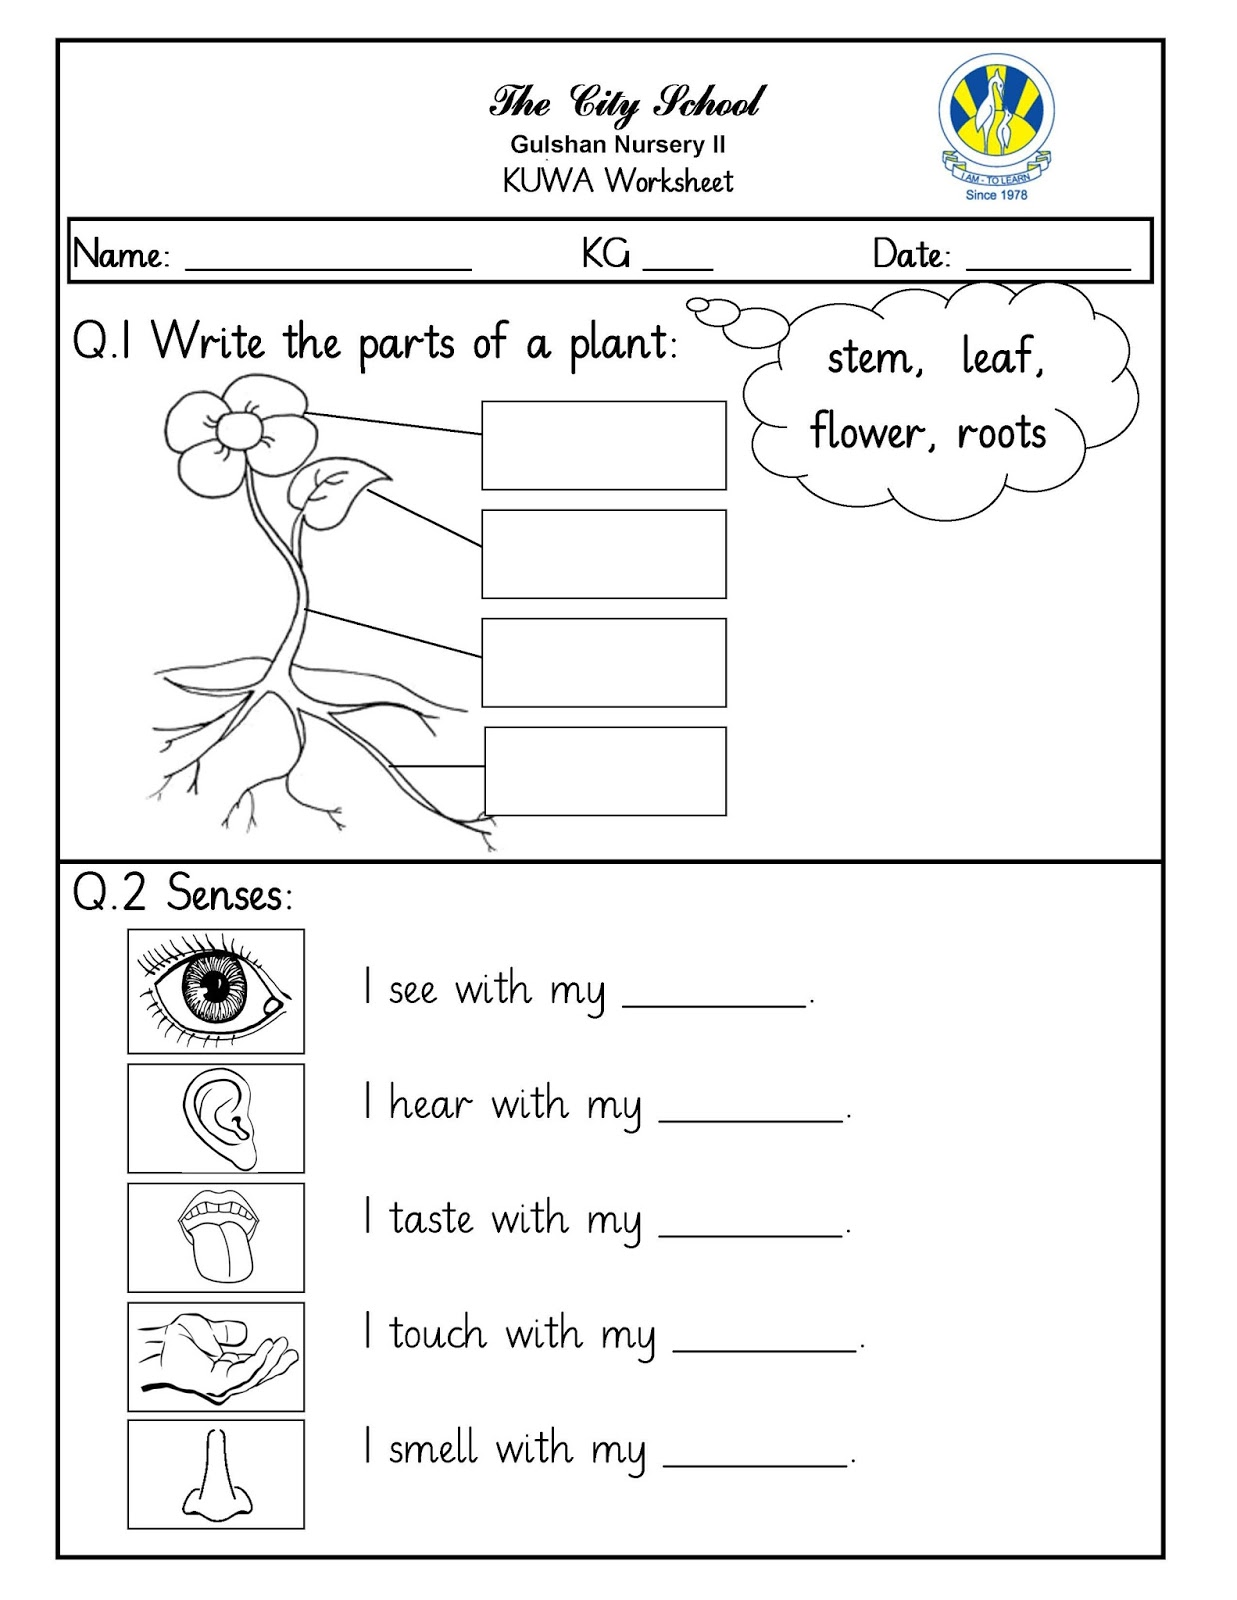 Sr Gulshan The City Nursery Ii Kuwa And Math Worksheets